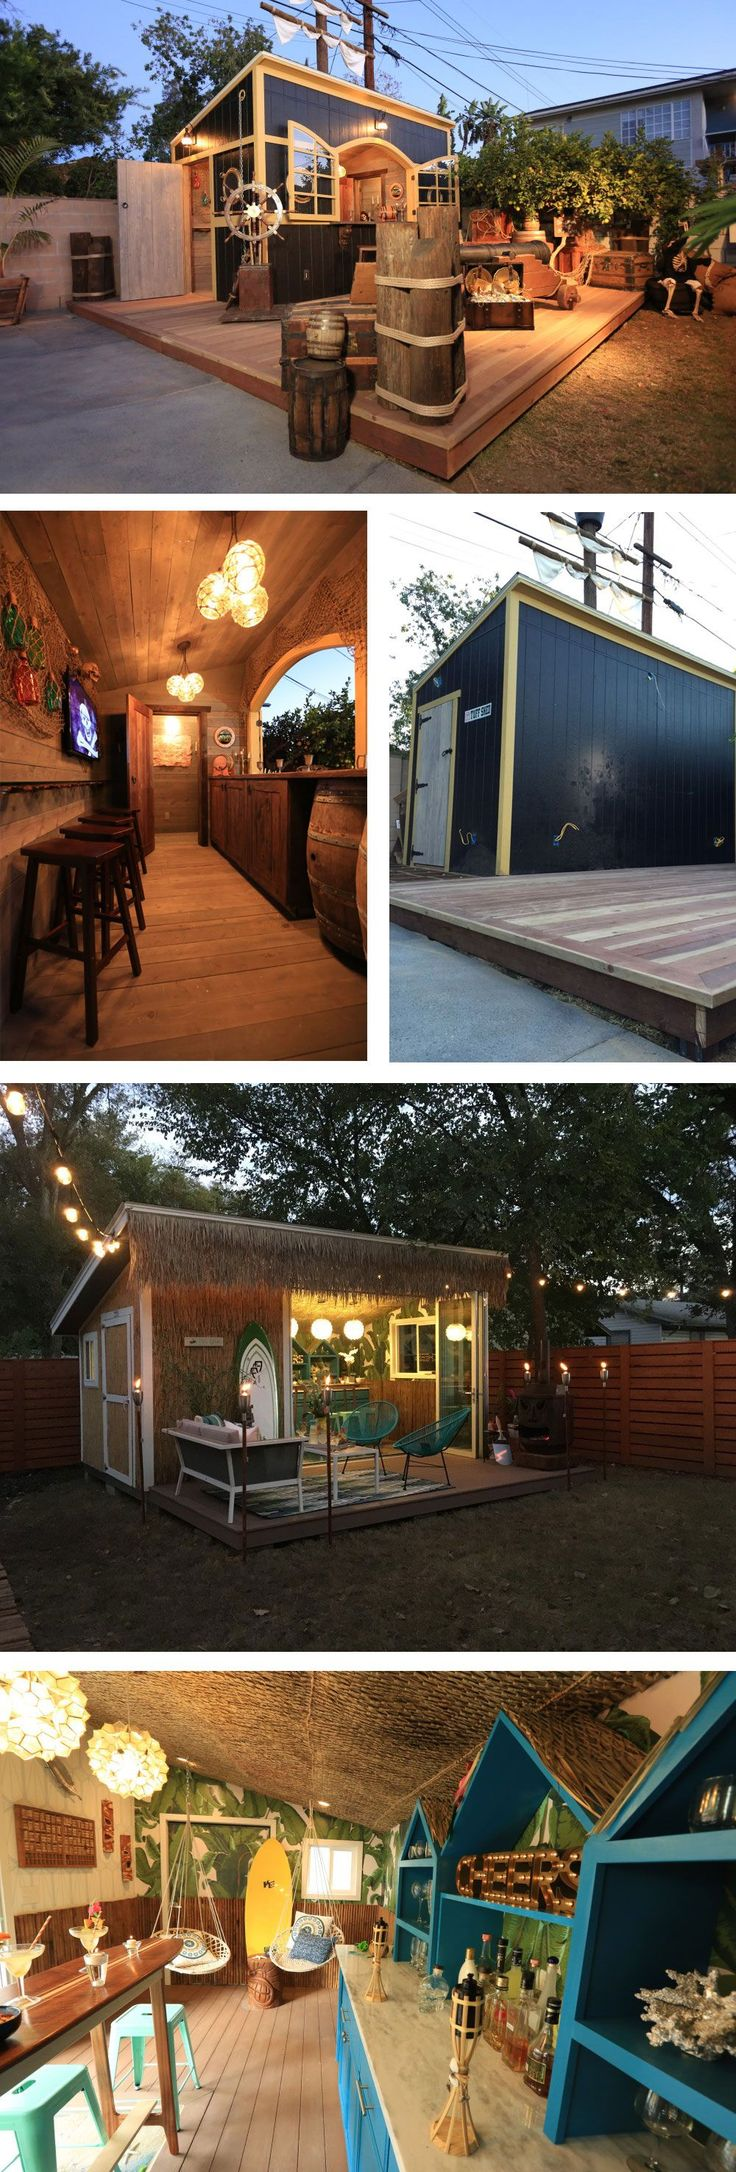 Turn a tuff shed into a bar or hangout for your backyard